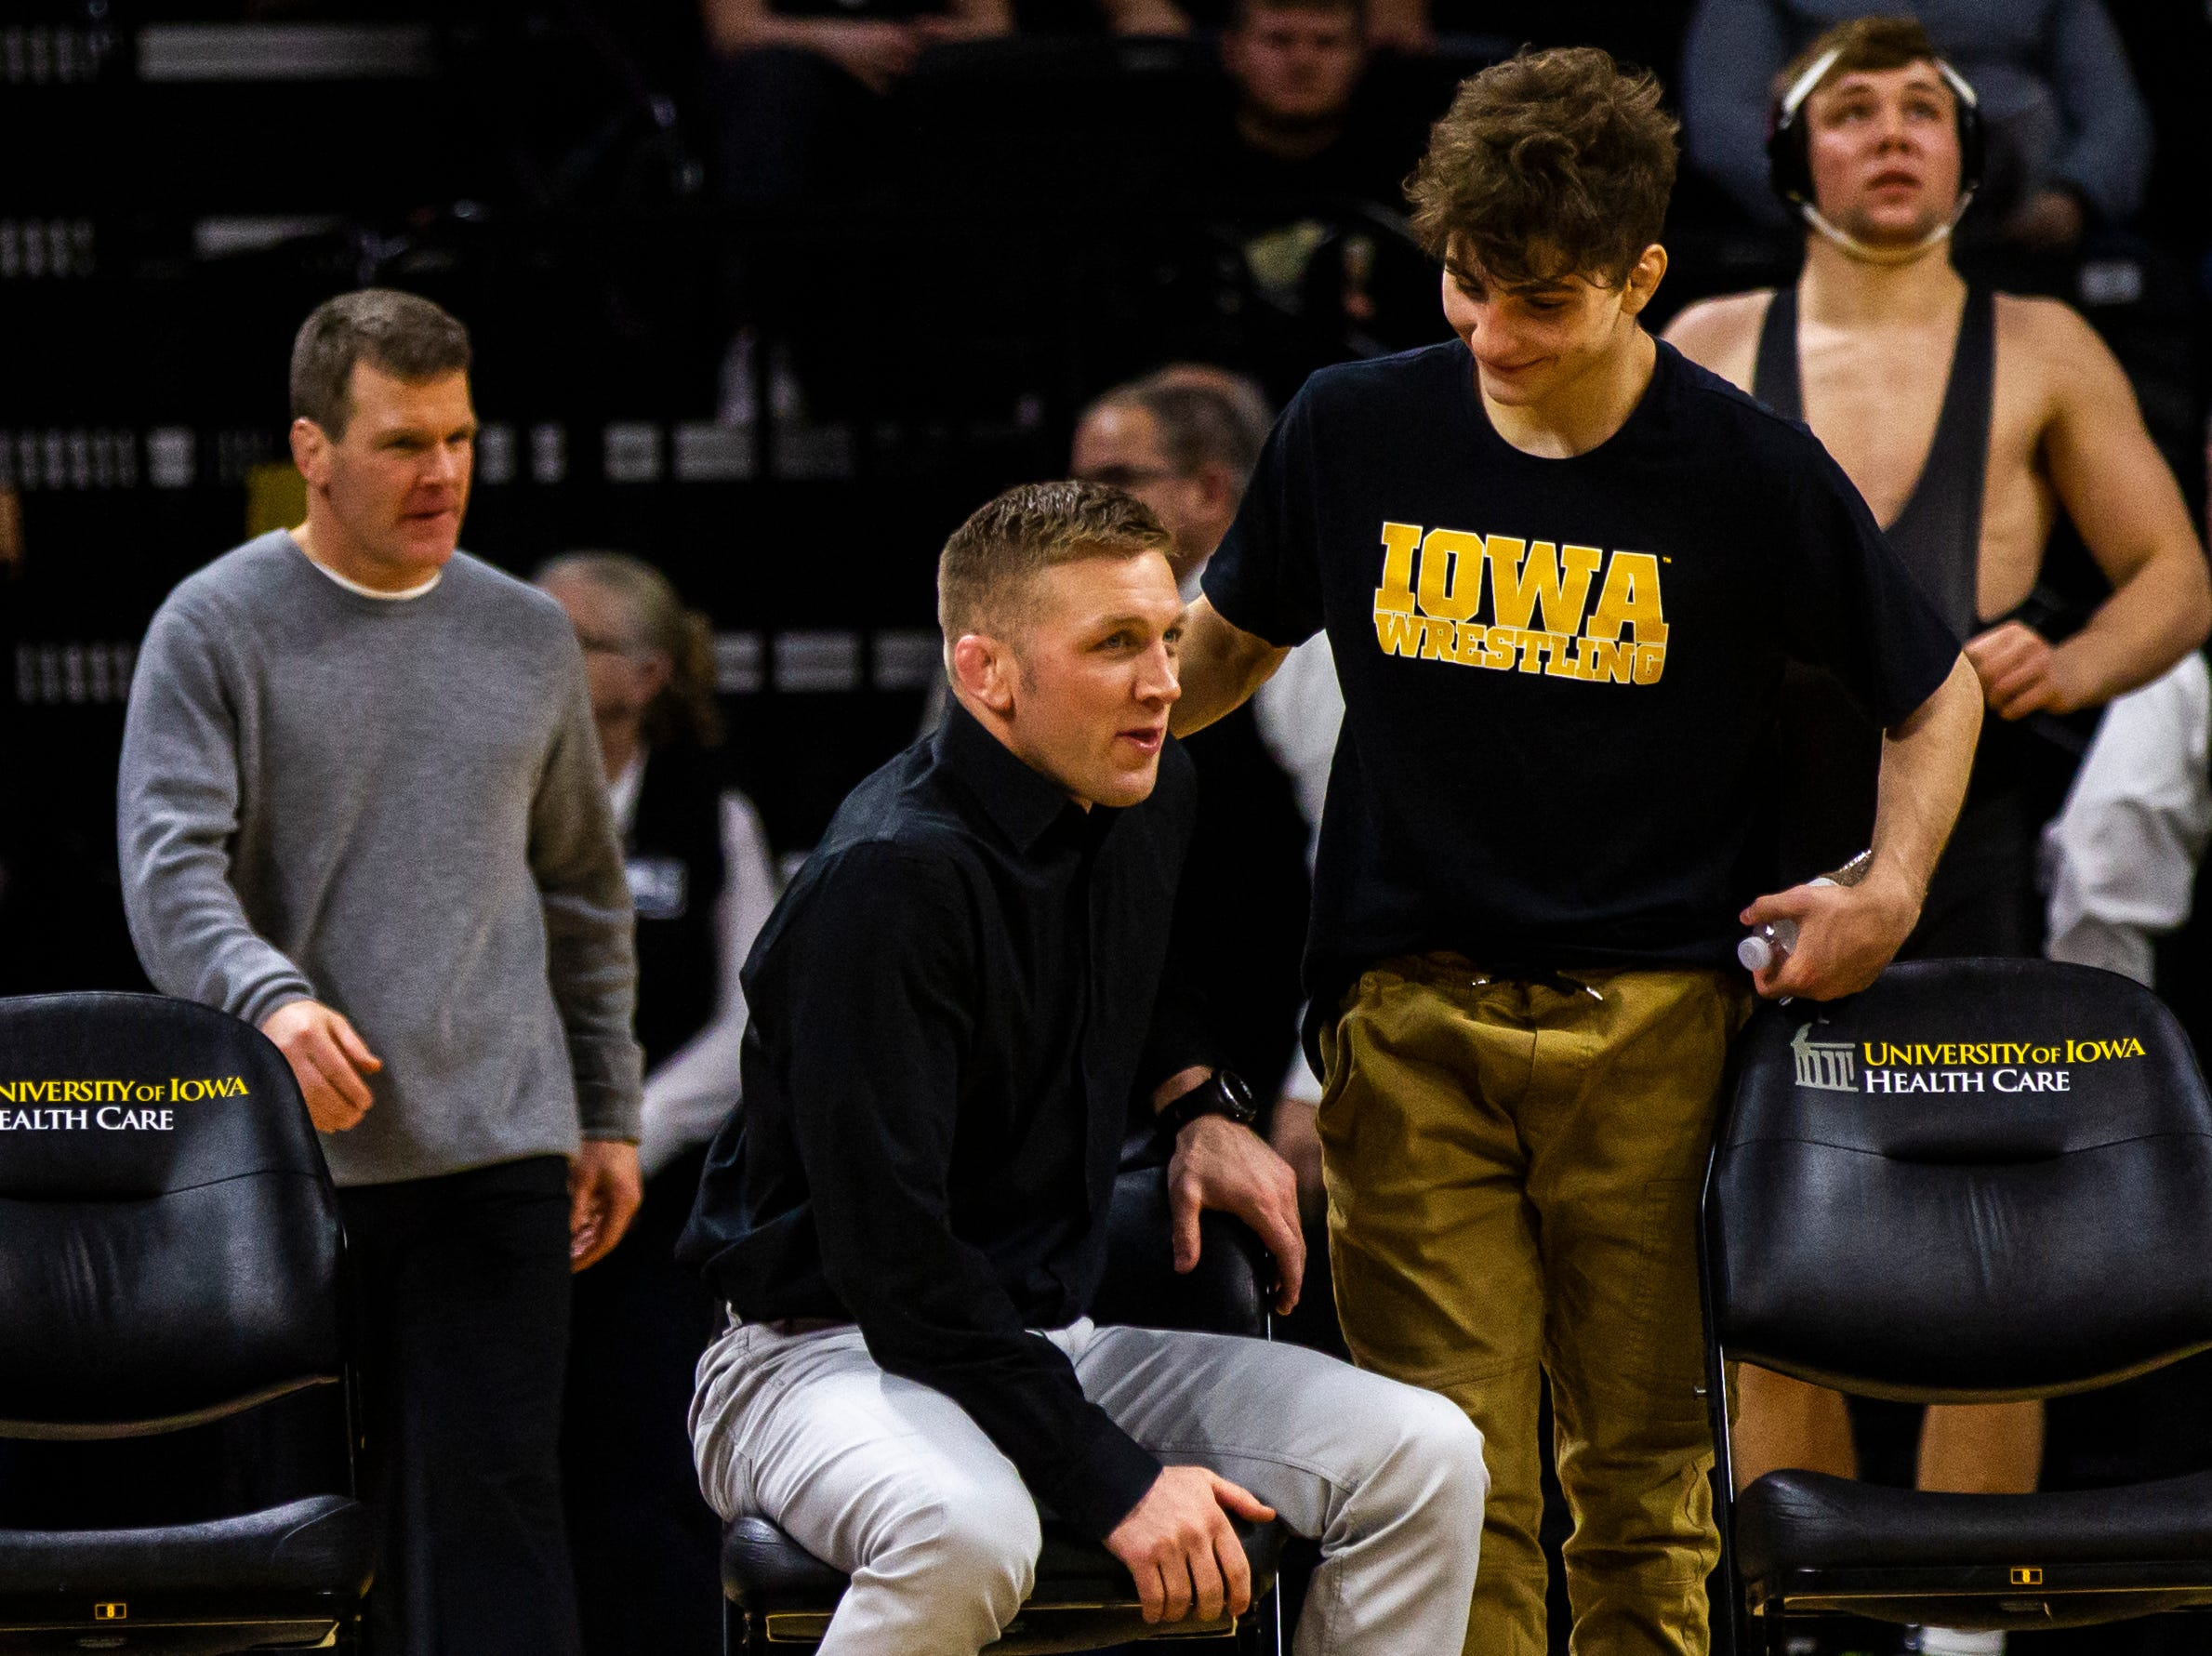 Iowa's Ryan Morningstar talks with Austin DeSanto during a NCAA Big Ten Conference wrestling dual on Friday, Jan. 18, 2019, at Carver-Hawkeye Arena in Iowa City, Iowa.